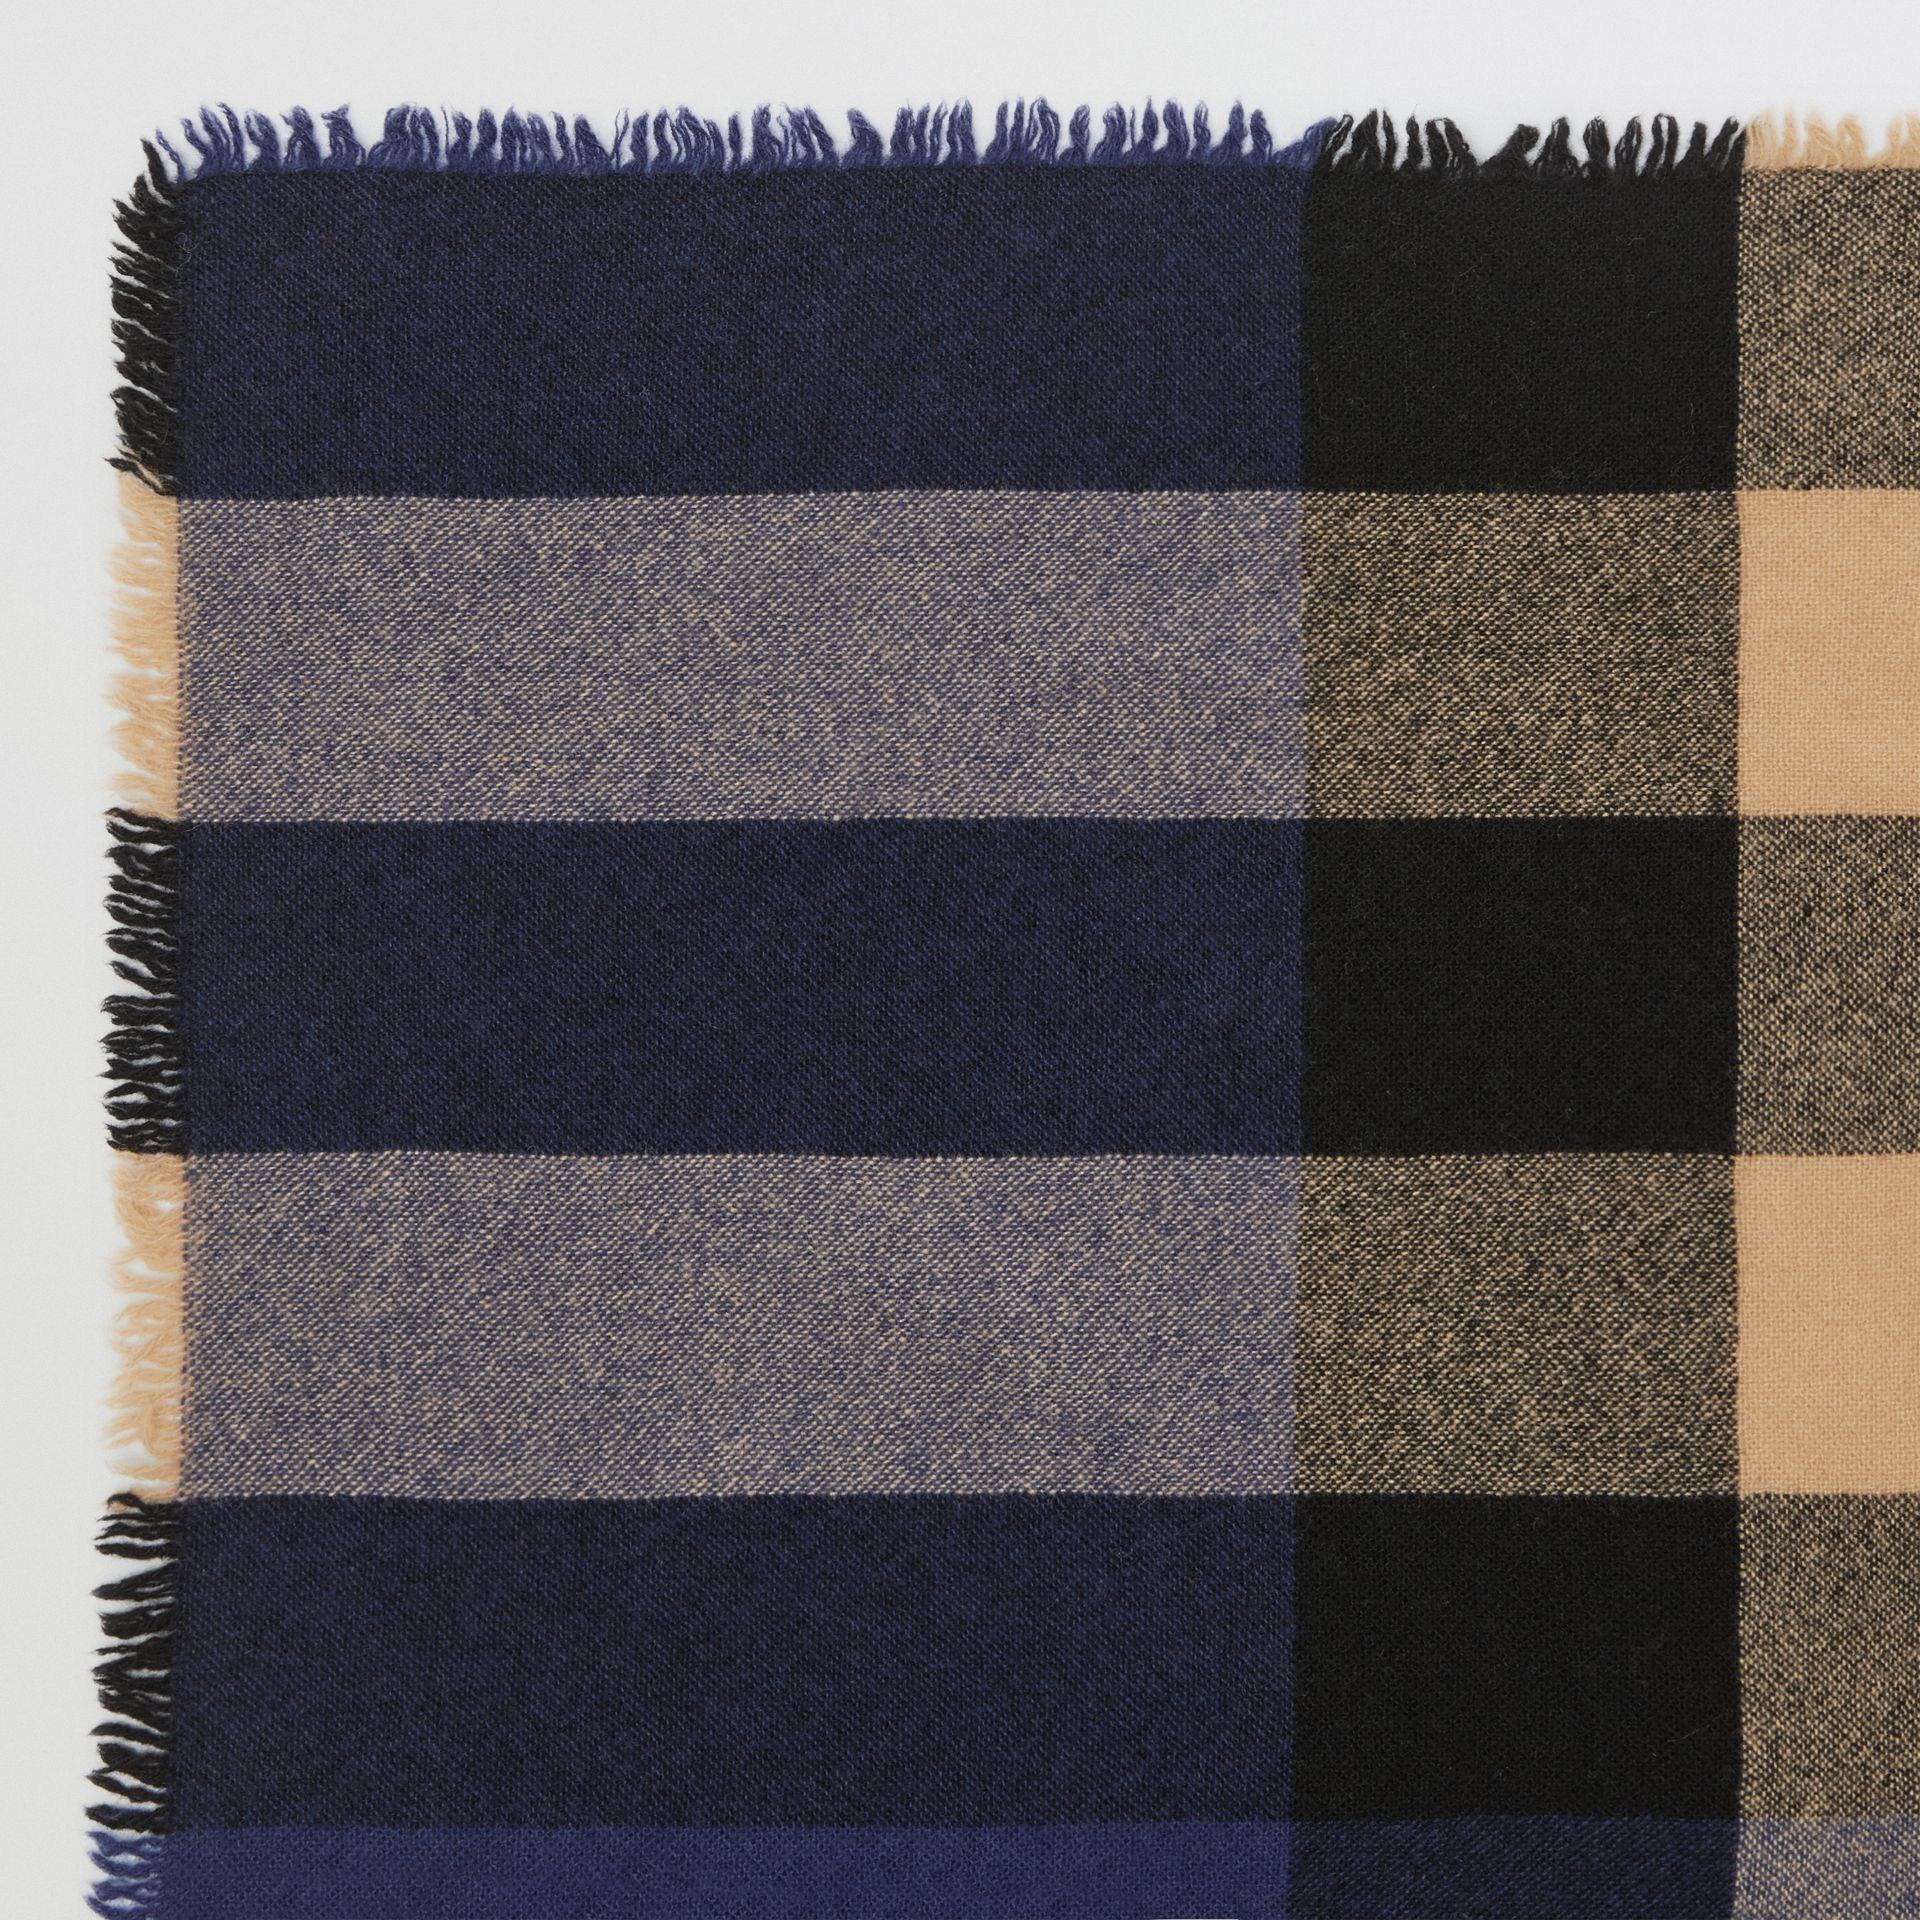 Fringed Check Wool Cashmere Scarf in Ink Blue | Burberry United States - gallery image 1